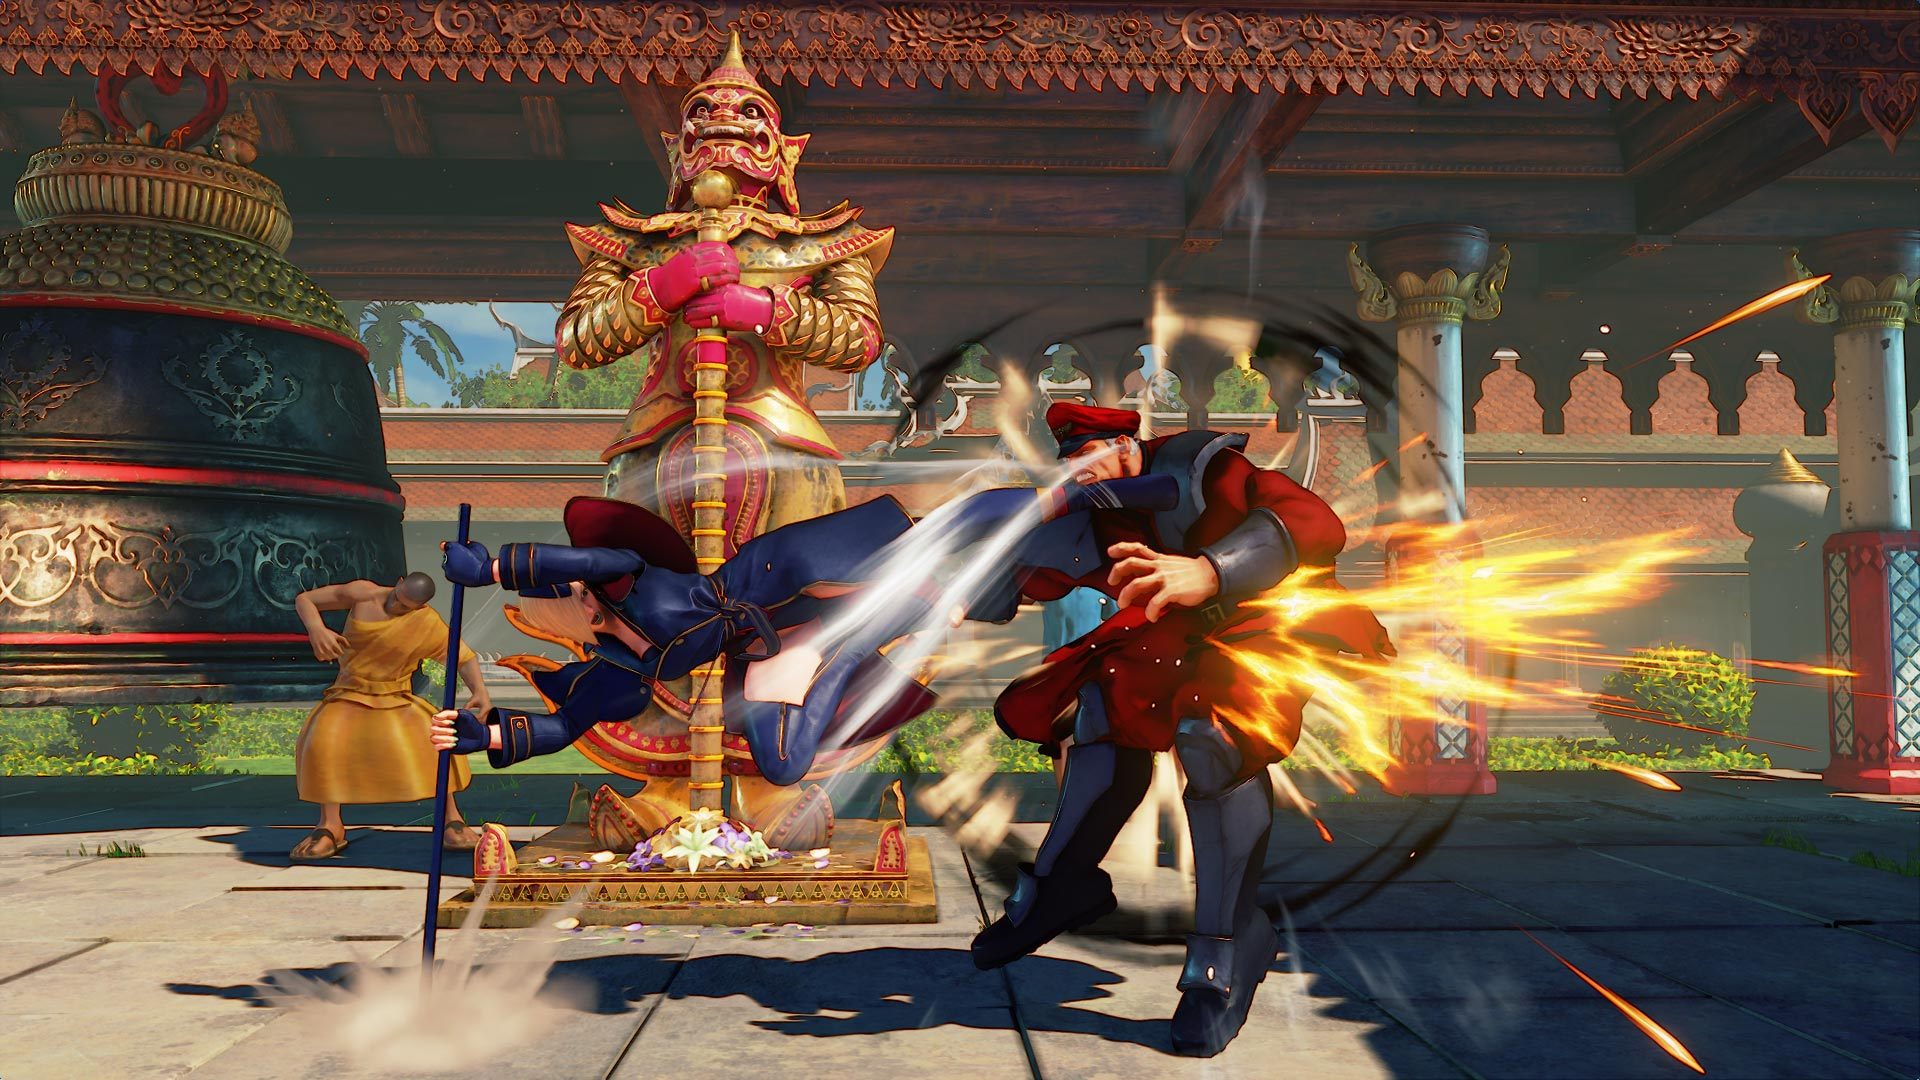 Falke in Street Fighter 5: Arcade Edition 6 out of 15 image gallery